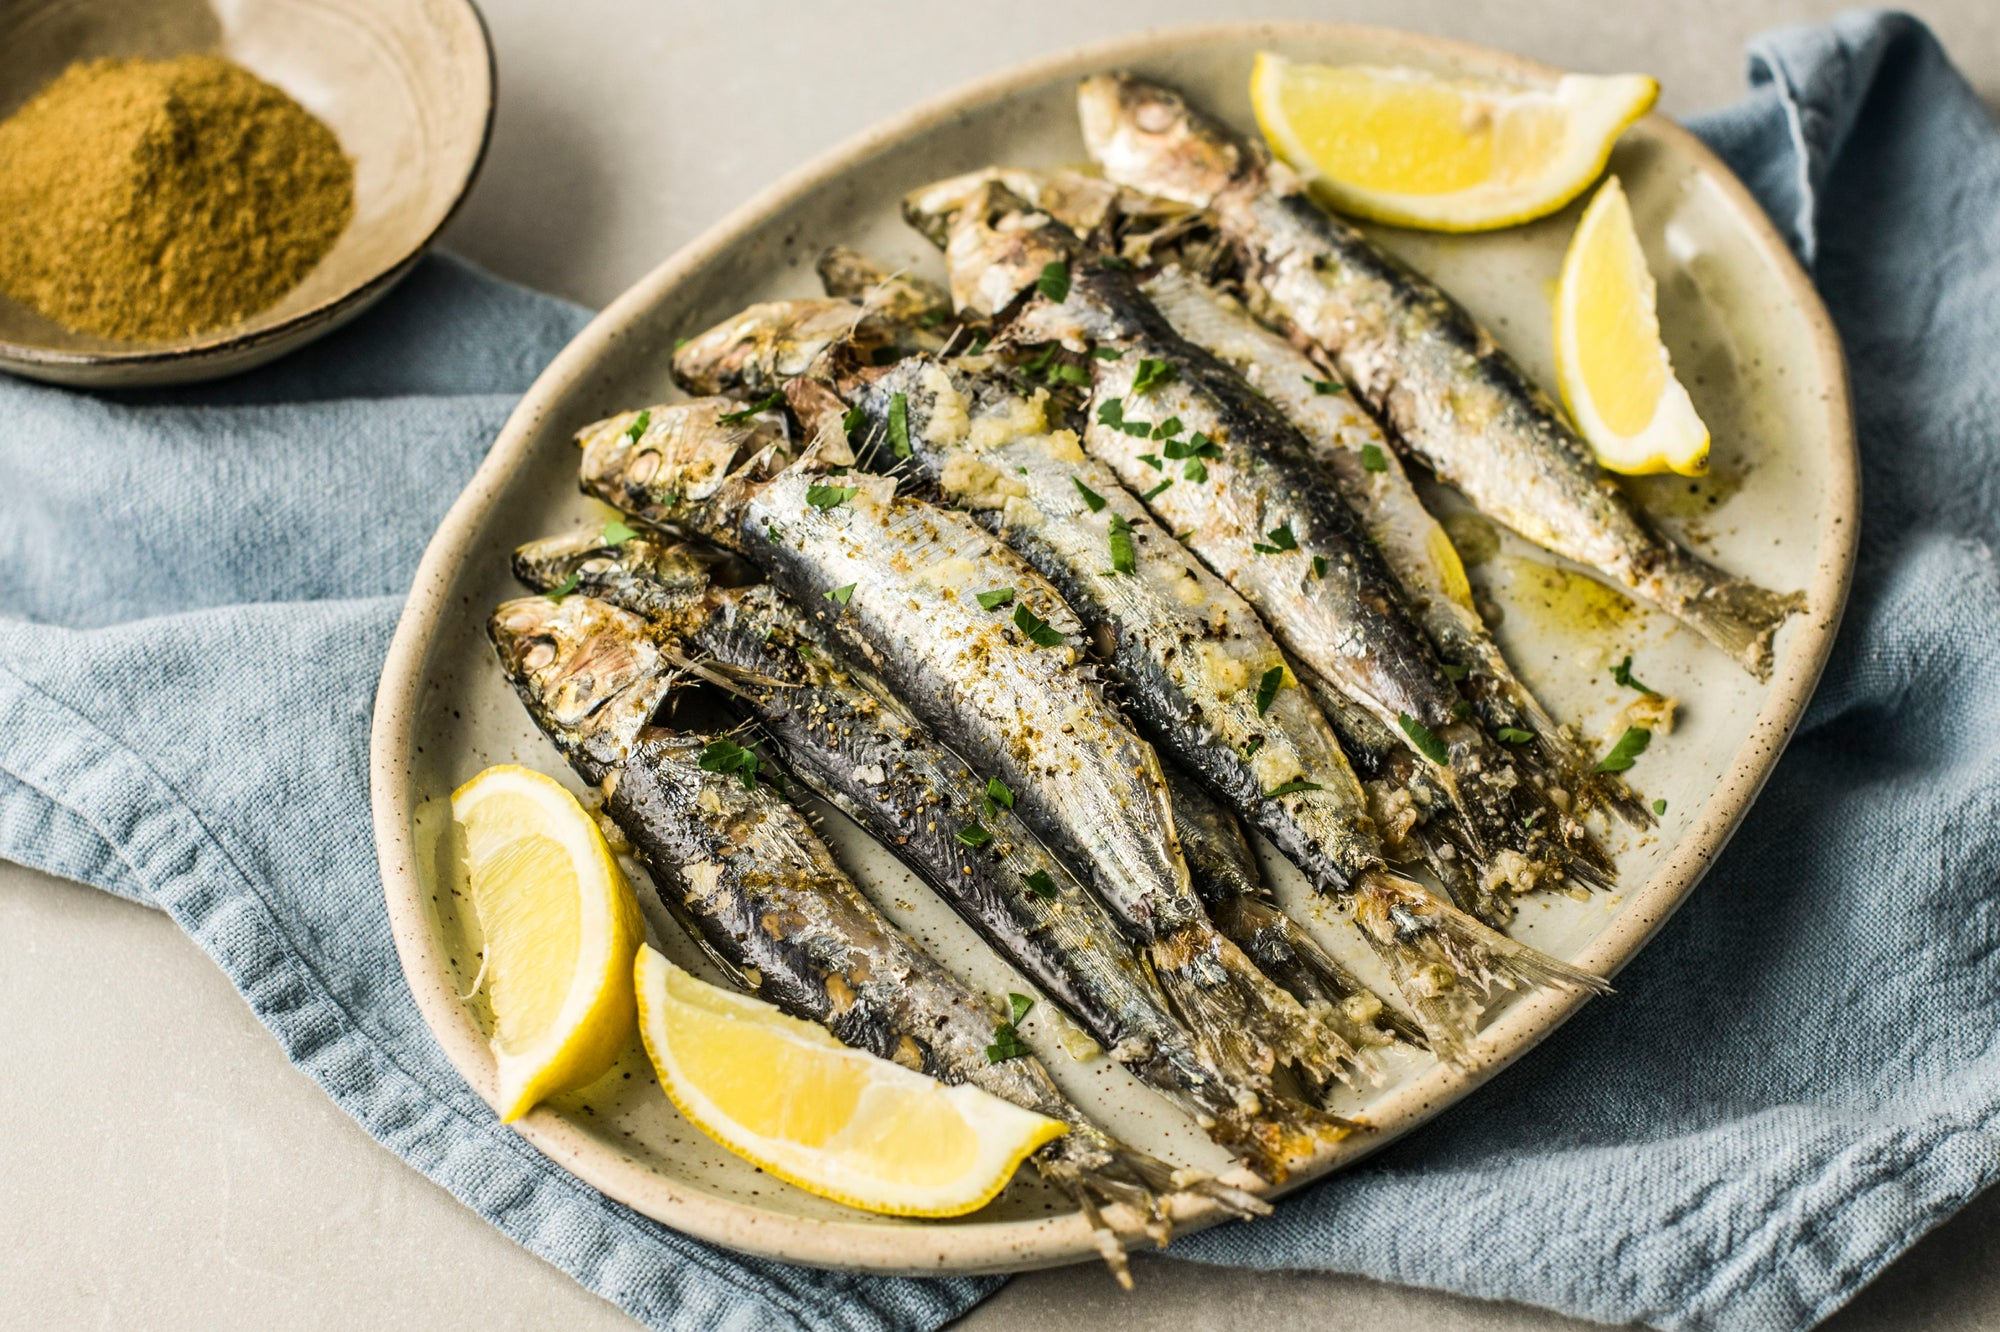 Wellness Wednesday: Are Sardines Good for You?